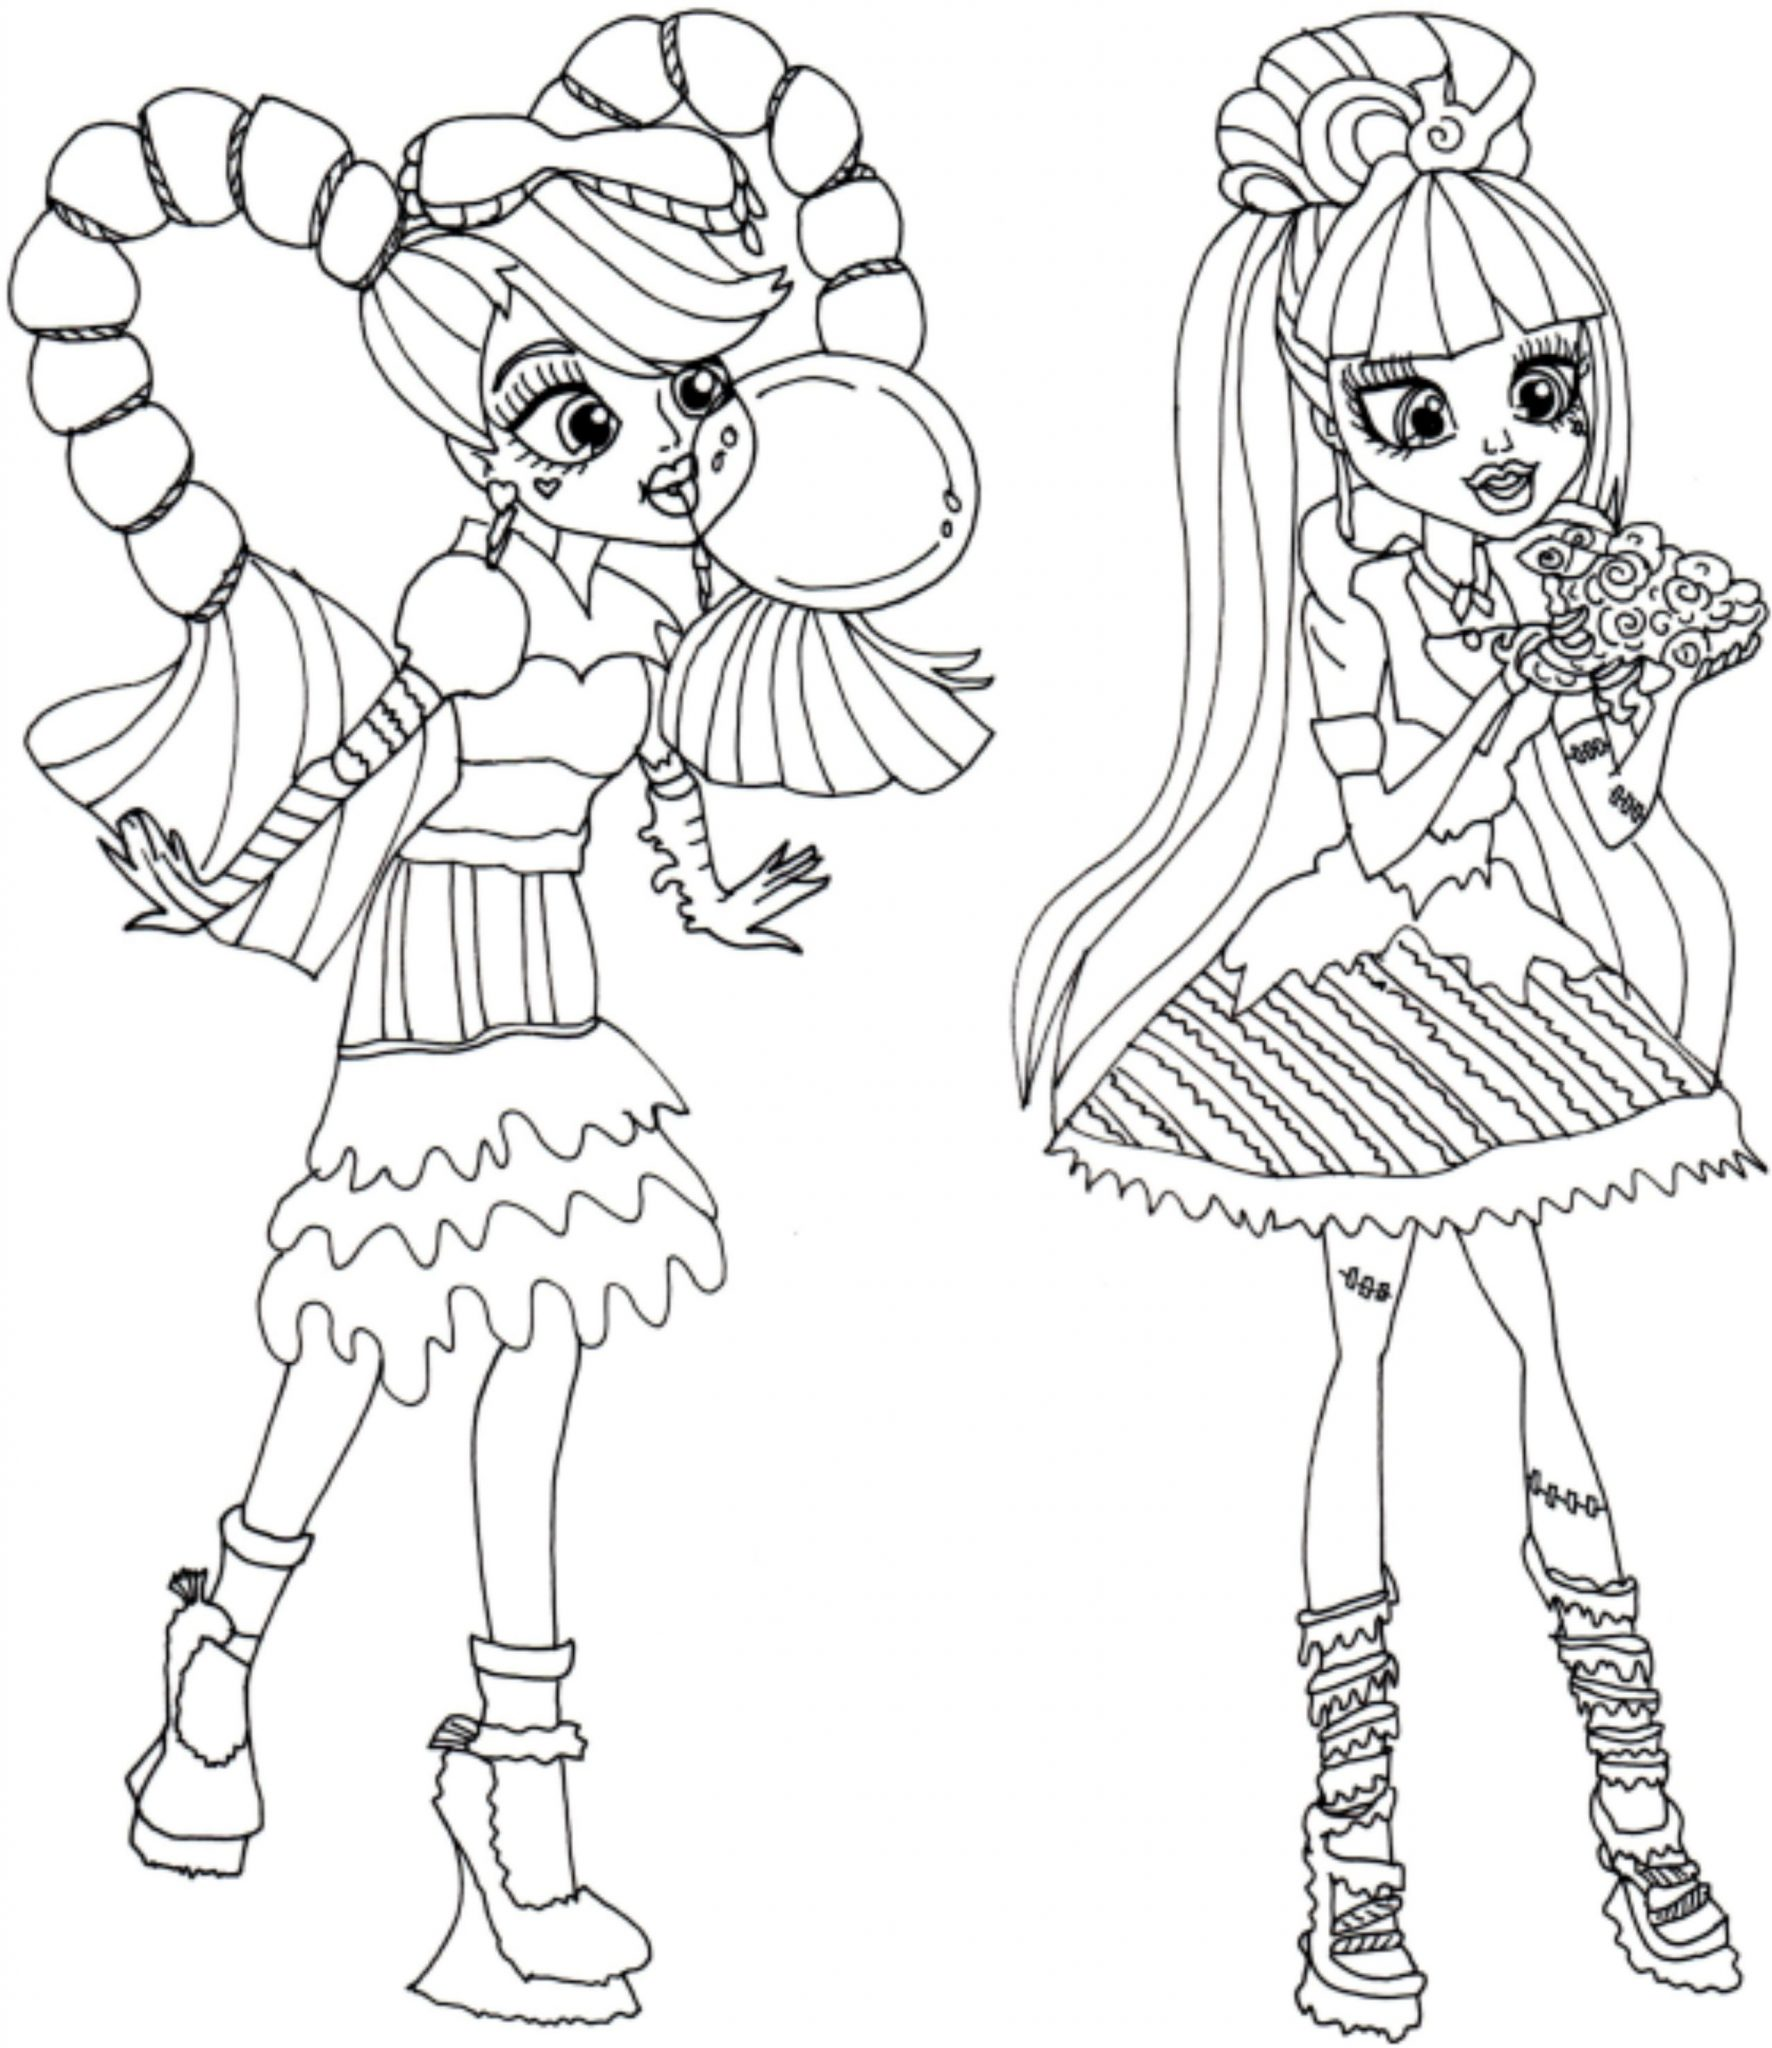 Print & Download - Monster High Coloring Pages Printable for Your Kids